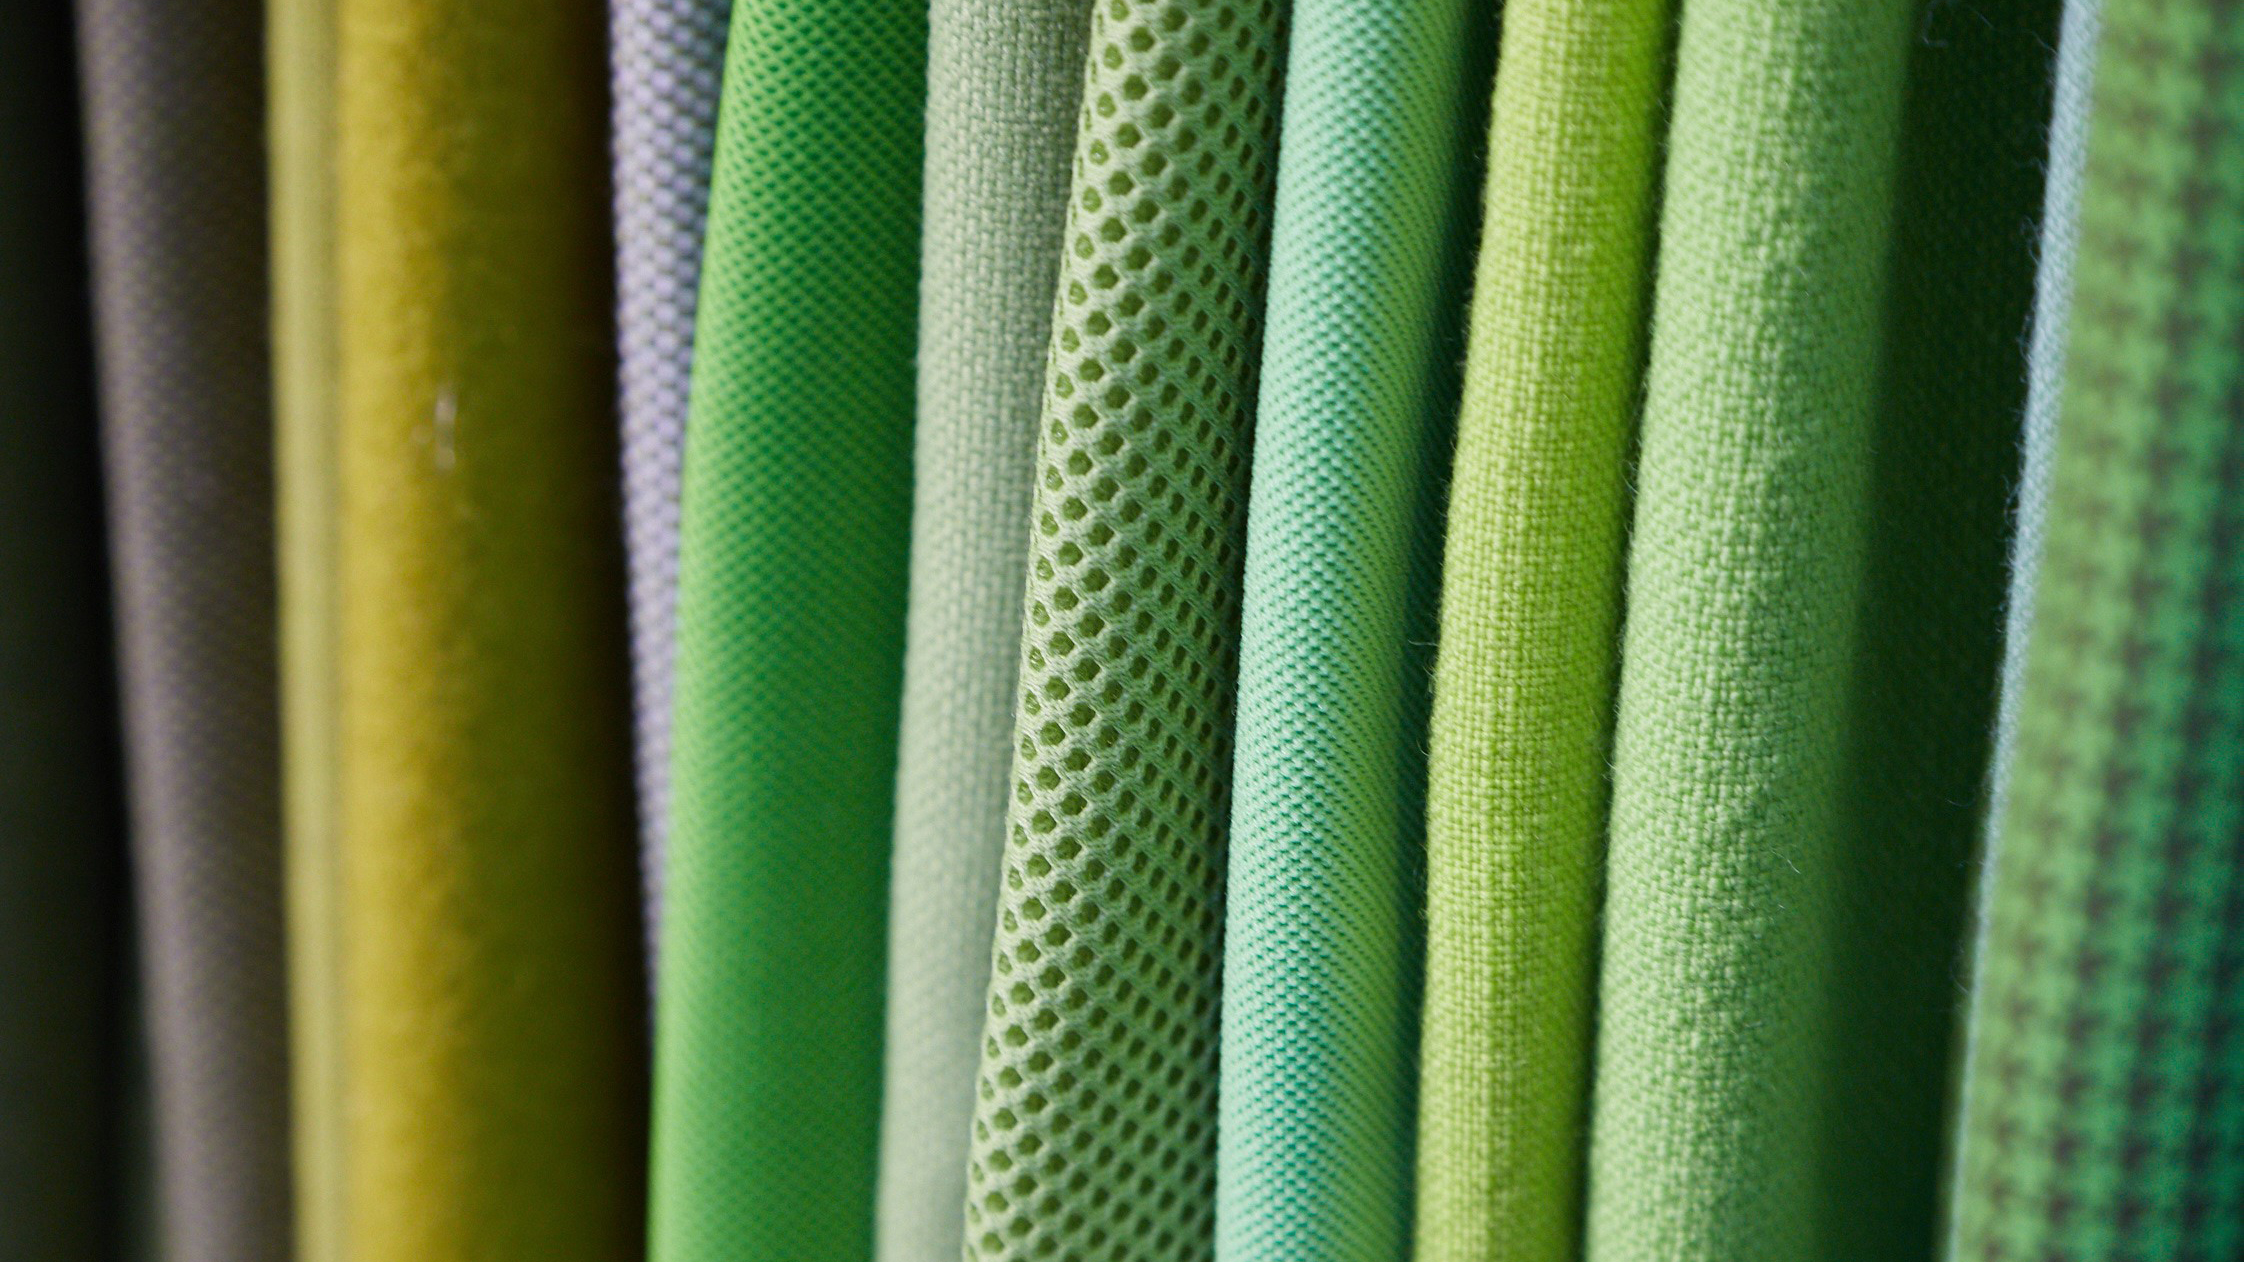 Fabrics in different shades of green